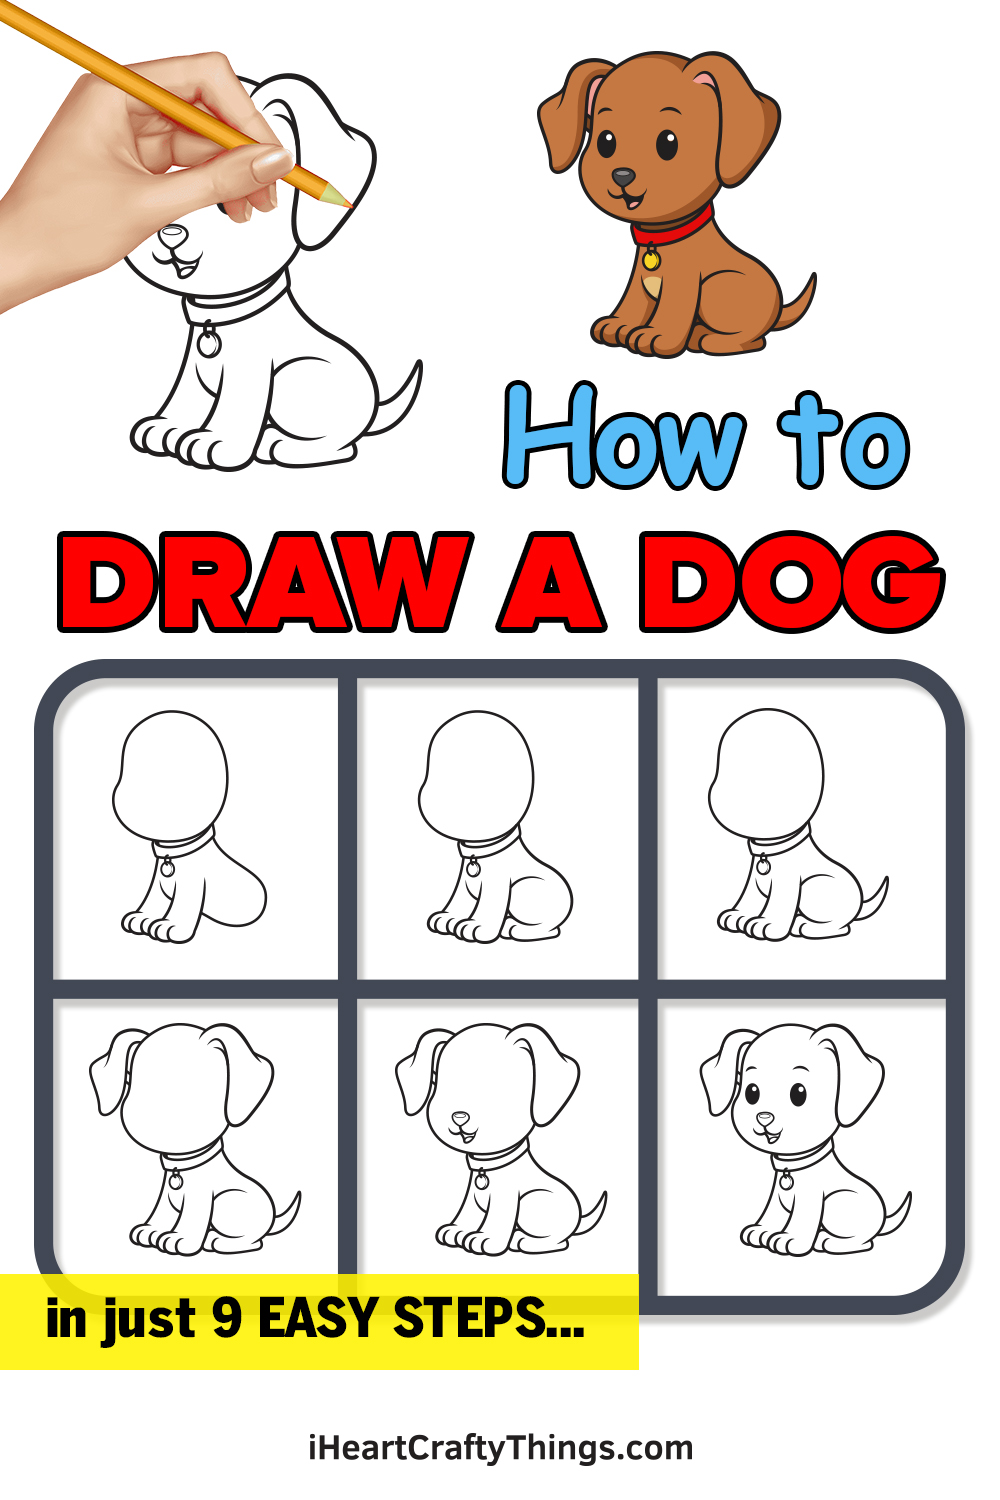 how to draw a dog in 9 easy steps